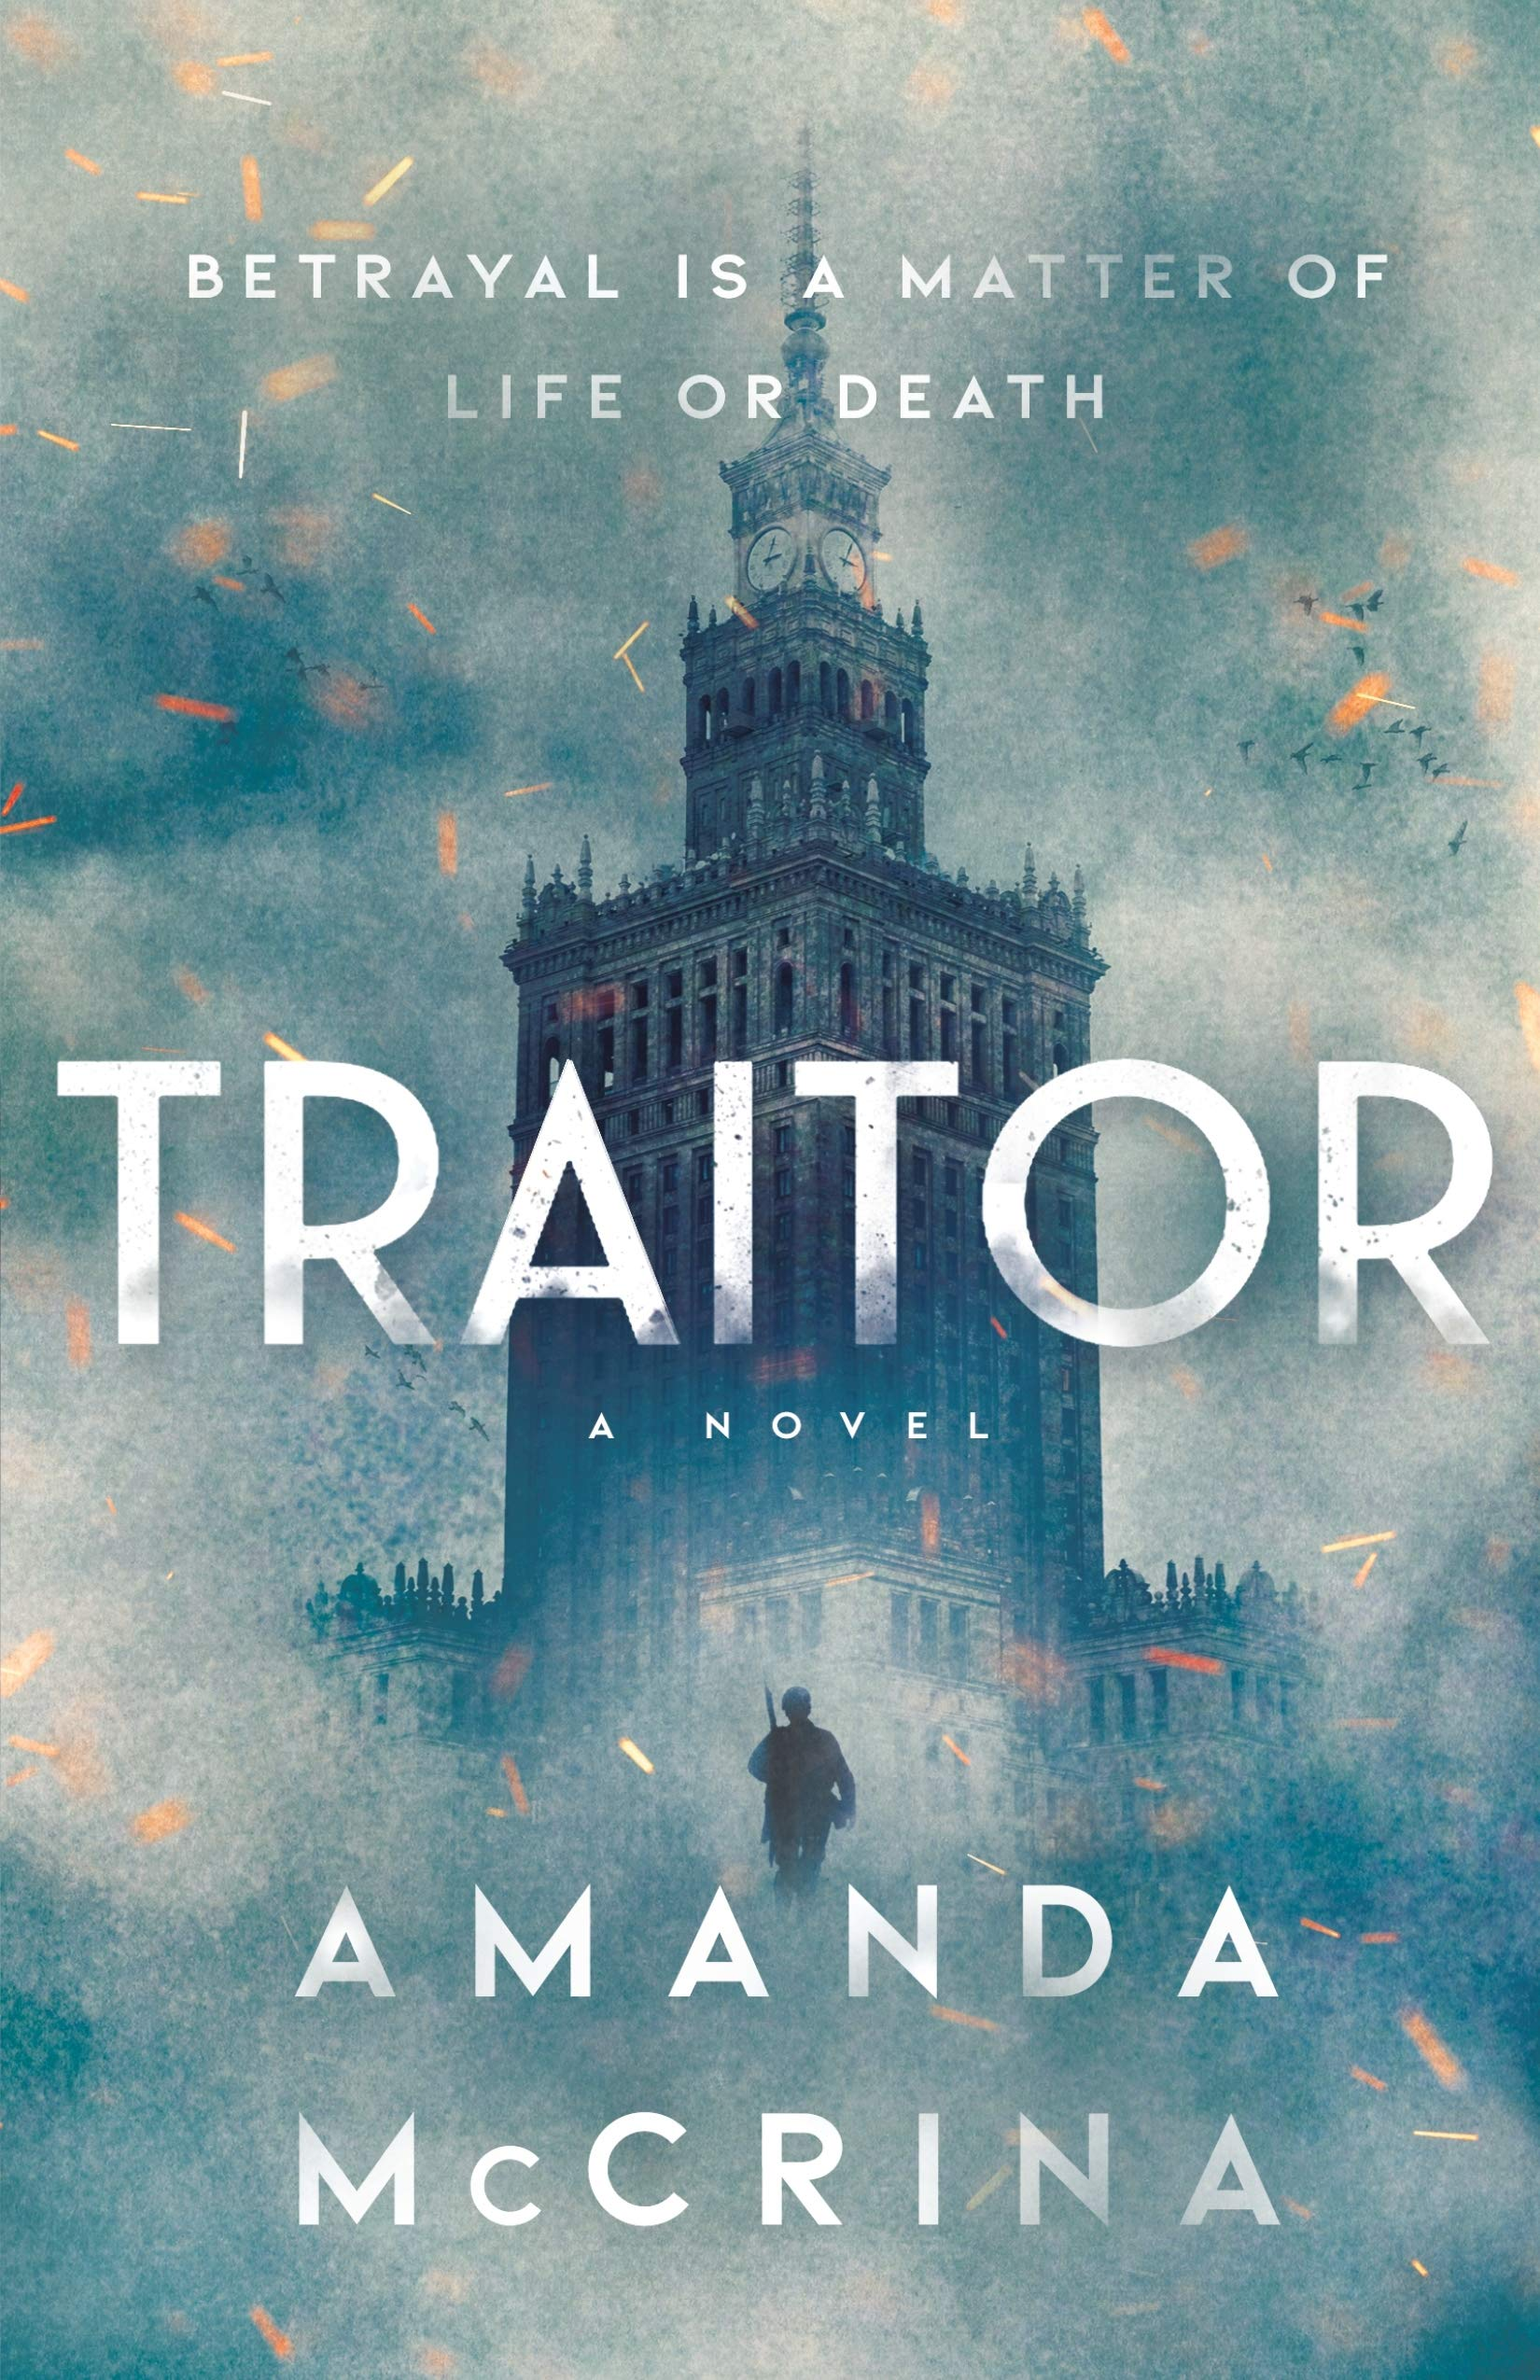 Traitor by Amanda McCrina